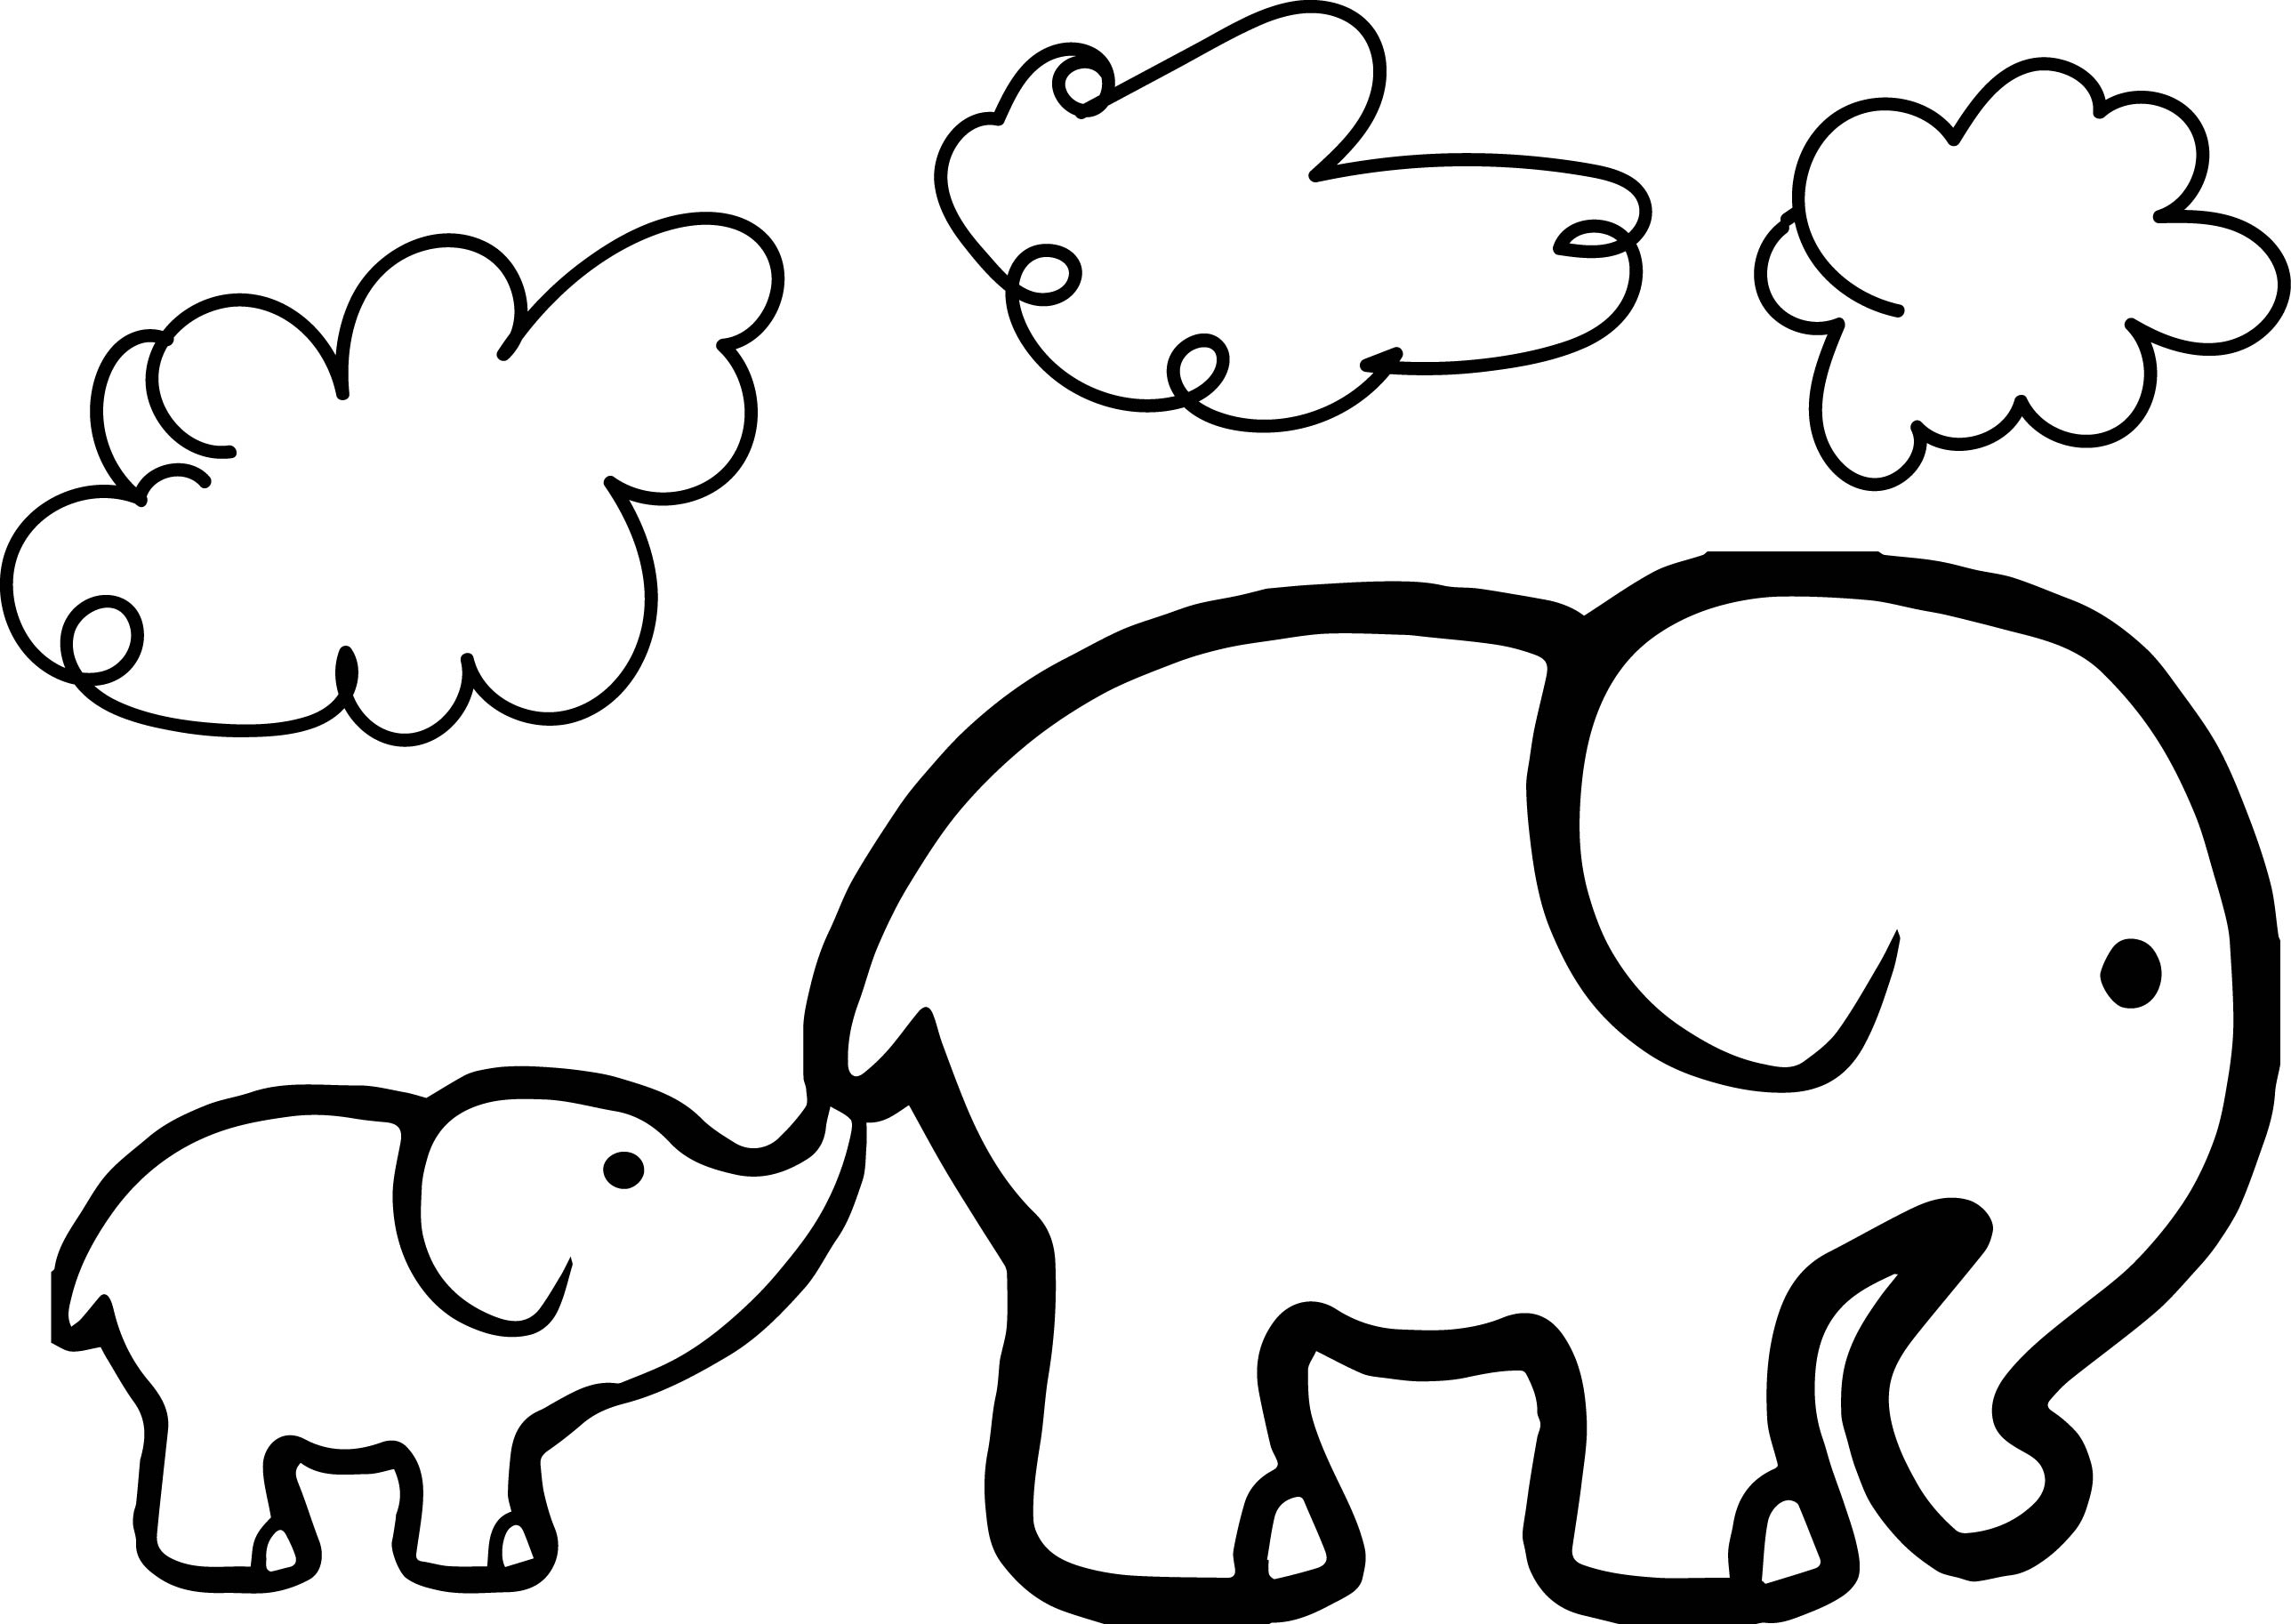 Baby Elephant And Adult Elephant Coloring Page | Wecoloringpage